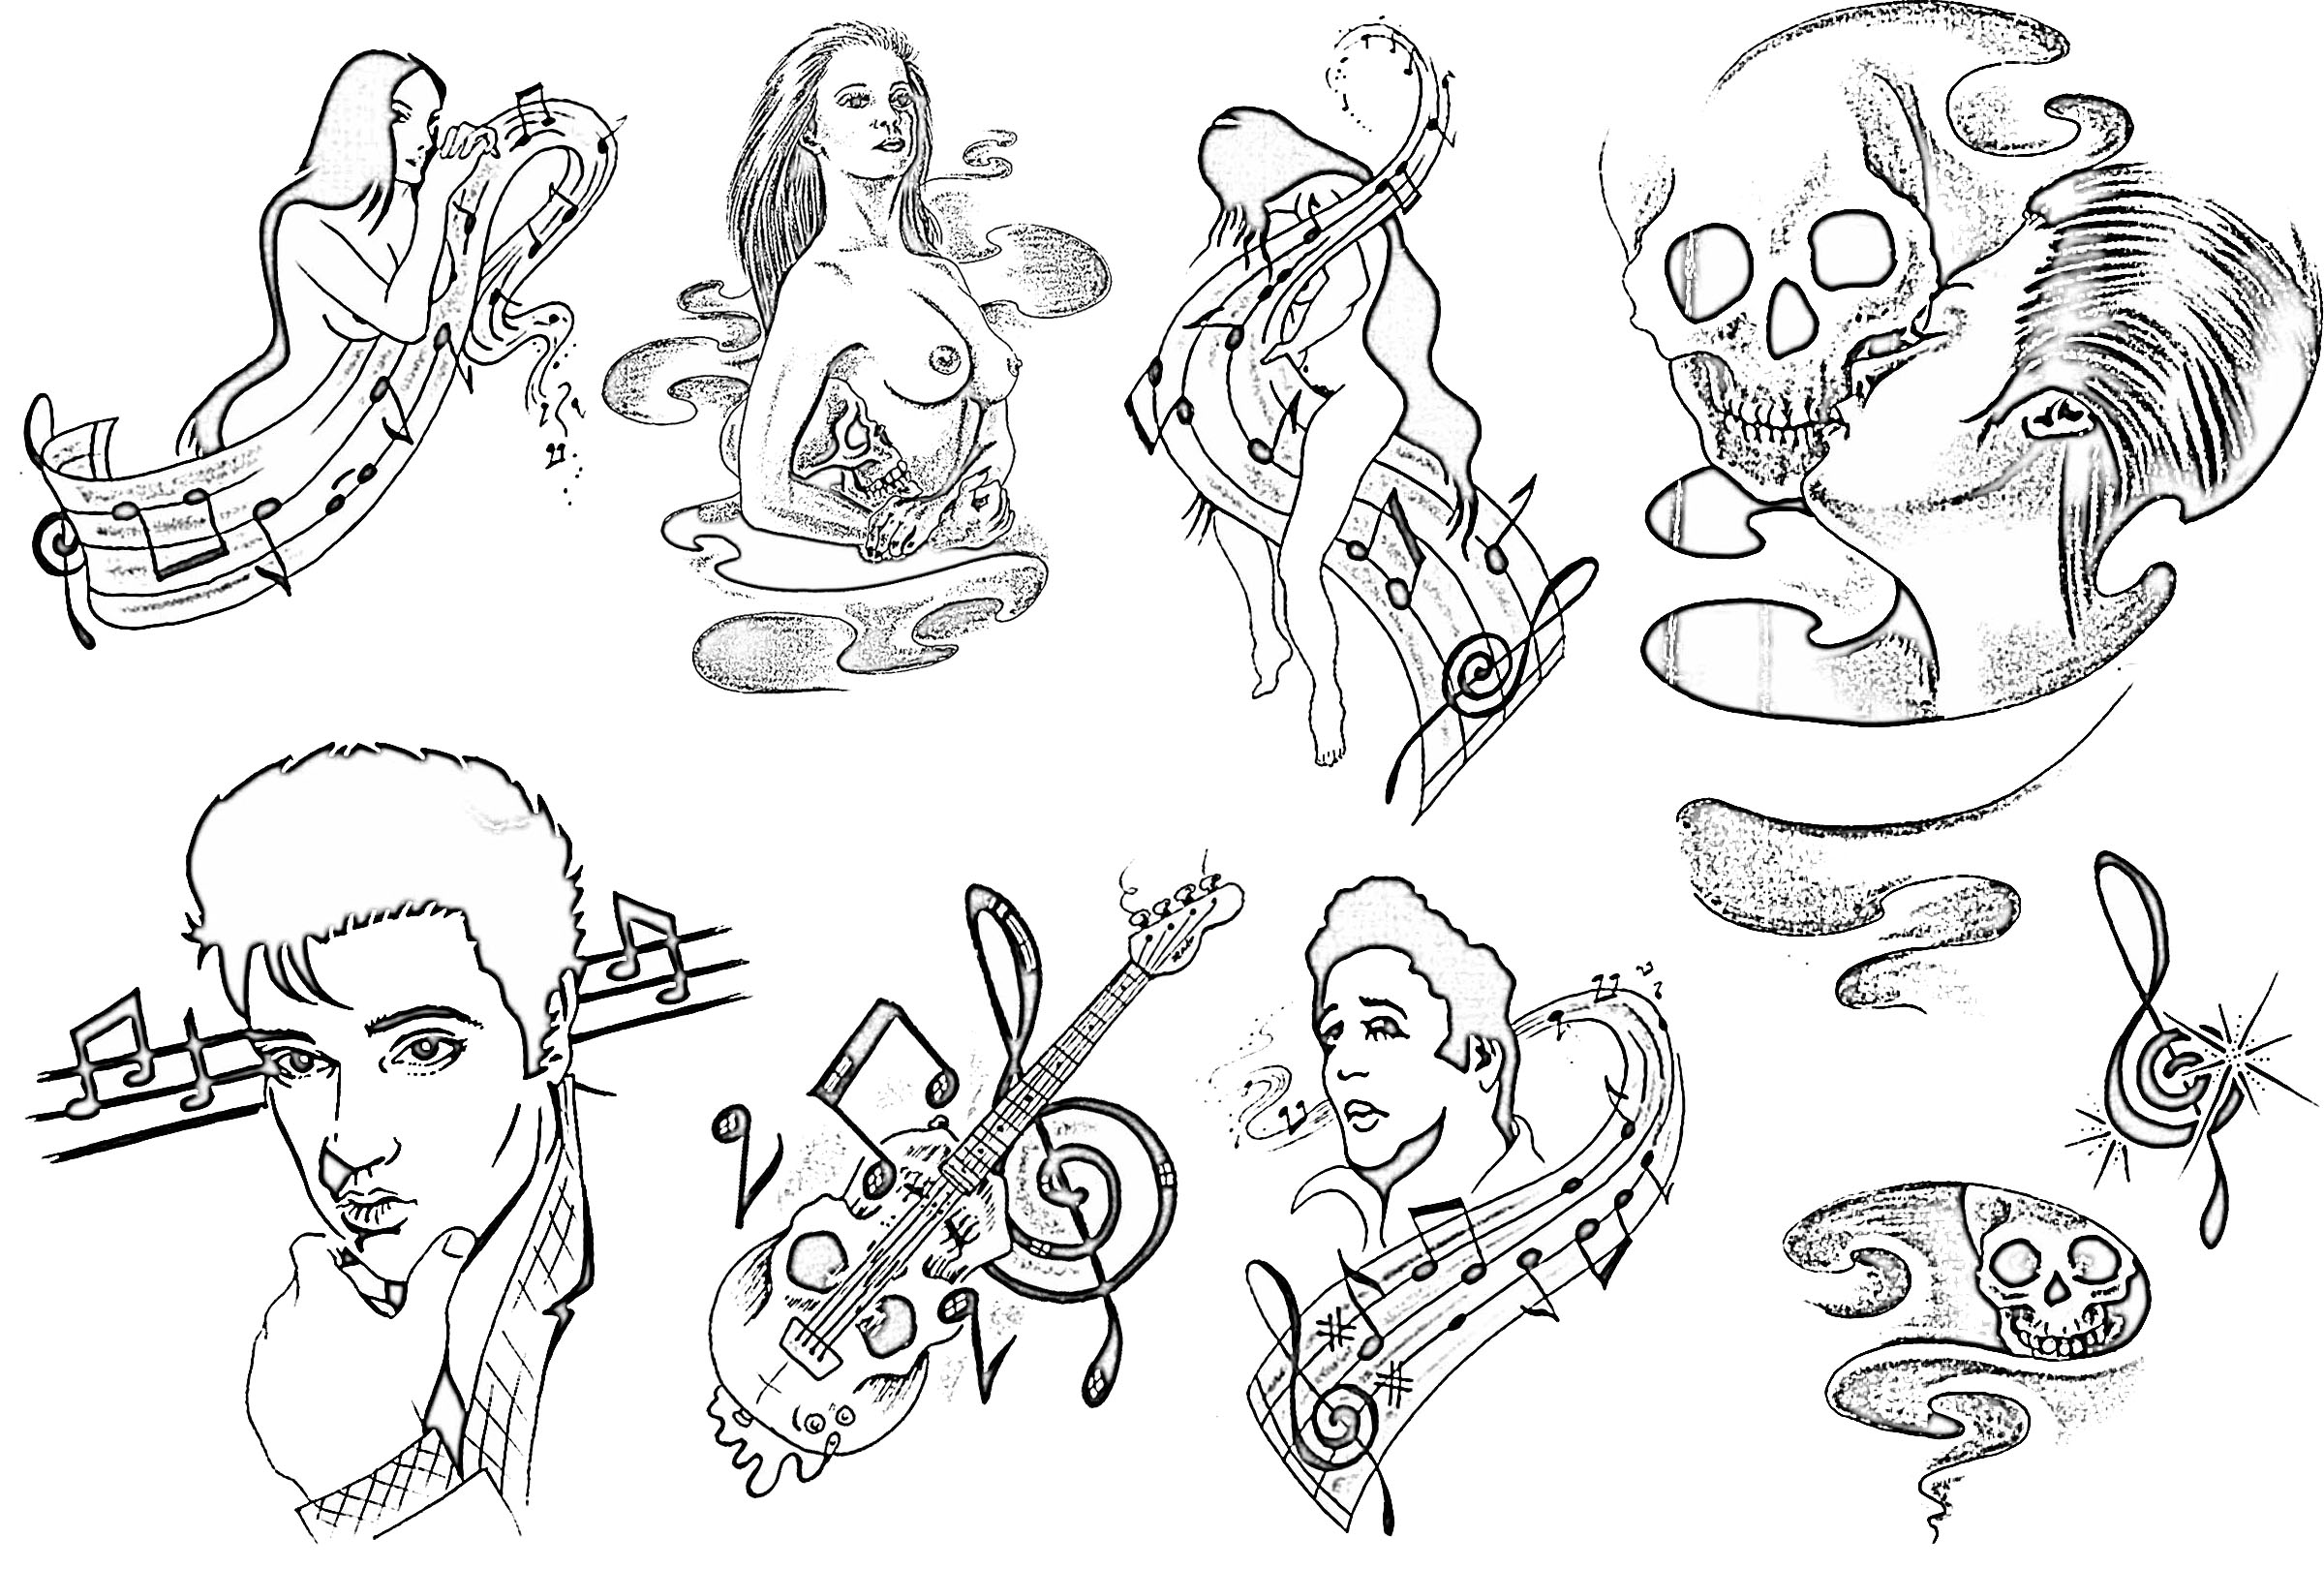 Tattoo Outline: Sketches With Outlines Sheet 213 Copy